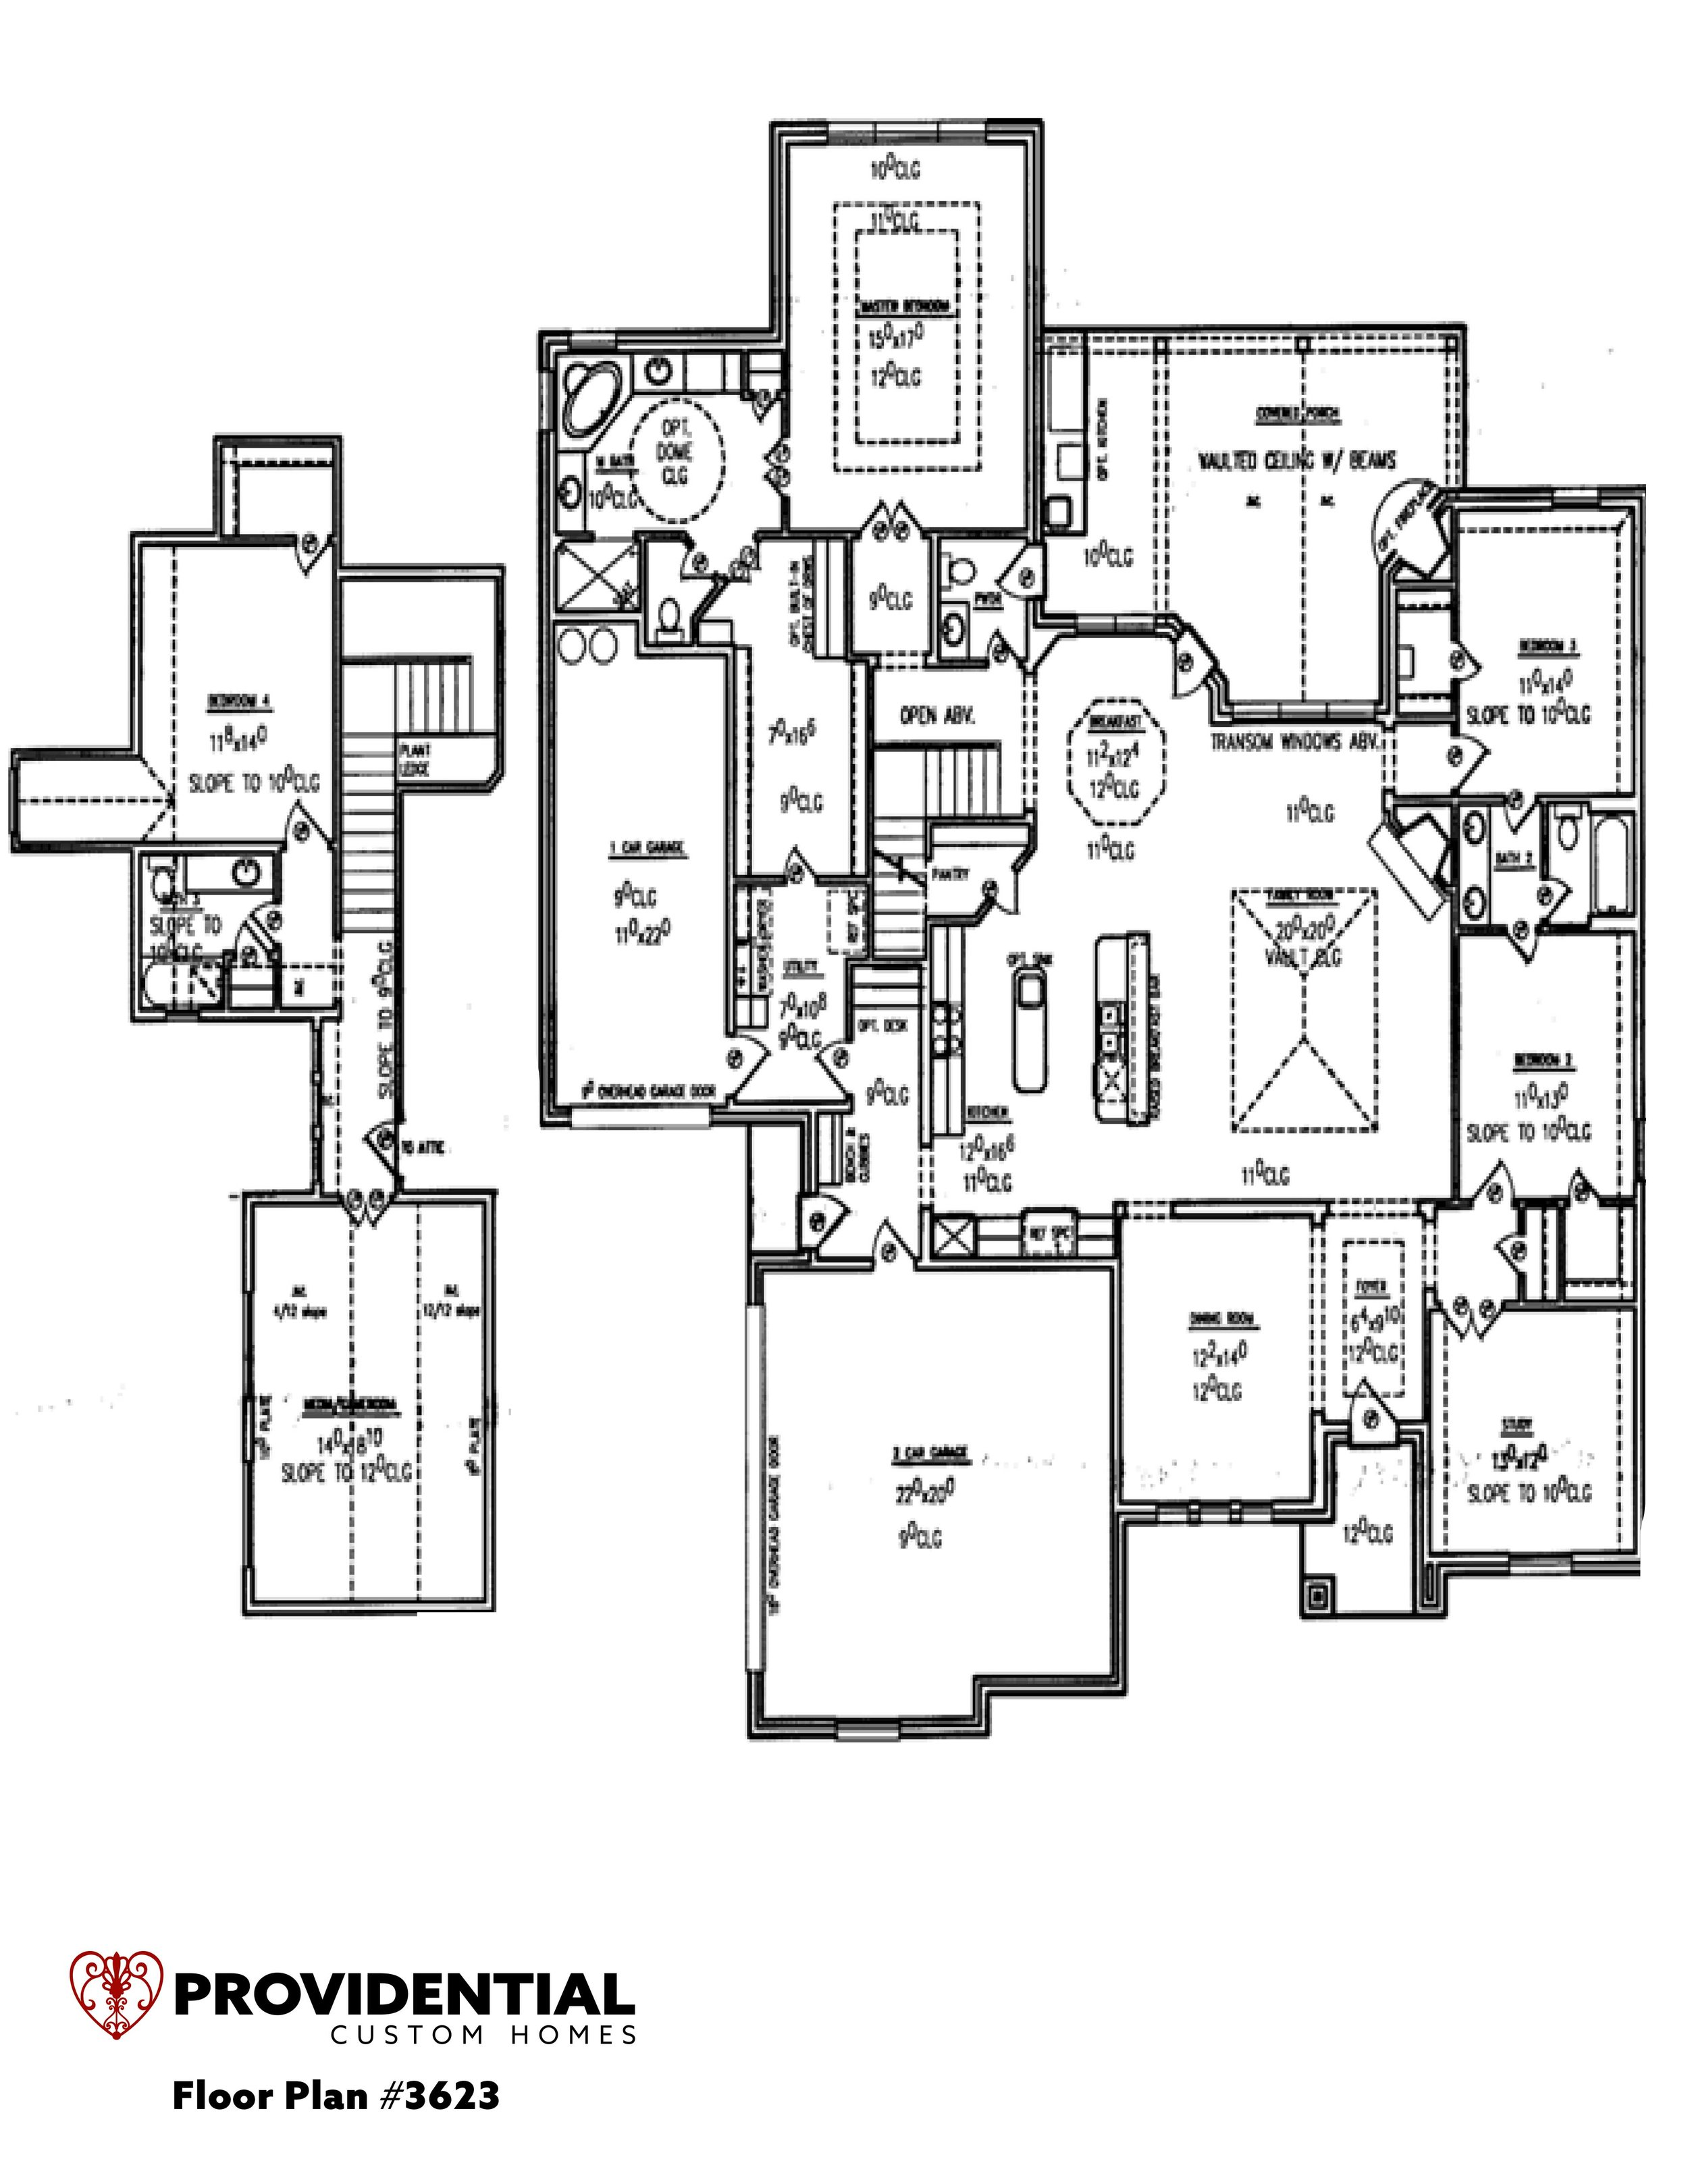 The FLOOR PLAN #3623.jpg